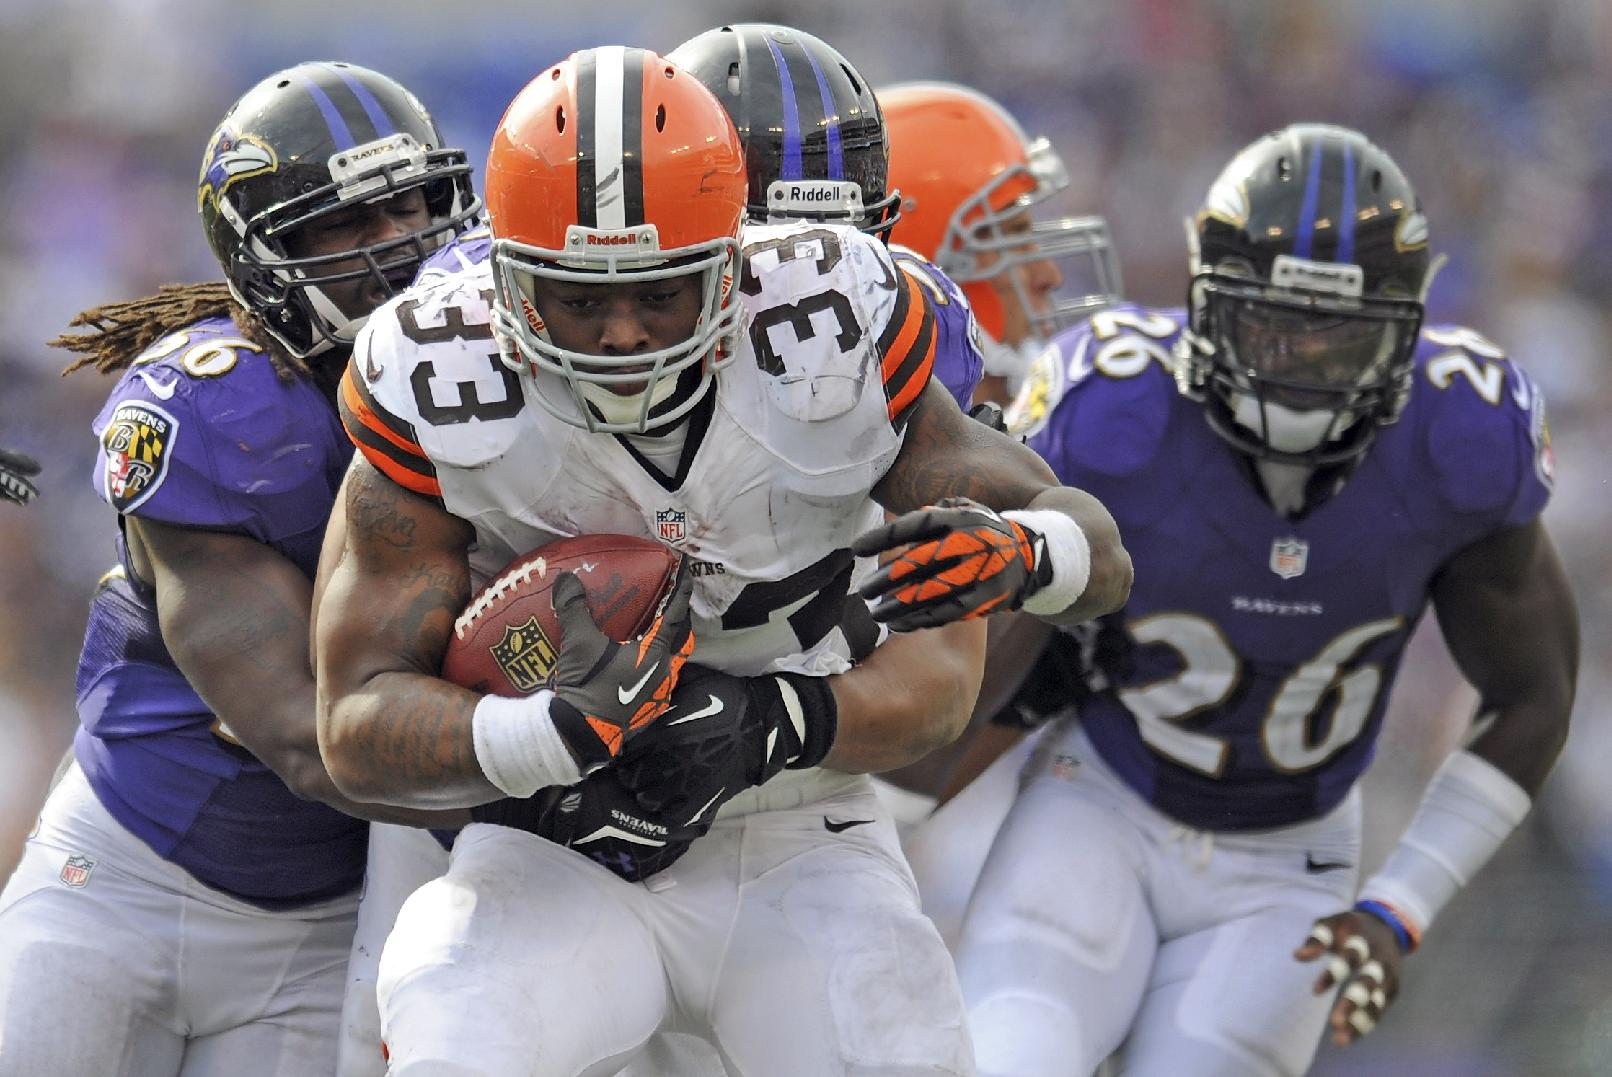 In this Sunday, Sept. 15, 2013, photo, Cleveland Browns running back Trent Richardson carries the ball during an NFL football game against the Baltimore Ravens in Baltimore. The Browns have traded Richardson to the Indianapolis Colts in a surprise move less than two years after drafting him in the first round. The Browns (0-2), struggling on offense under new coach Rob Chudzinski, announced the move Wednesday afternoon, Sept. 18. They will also bring in veteran running back Willis McGahee for a physical